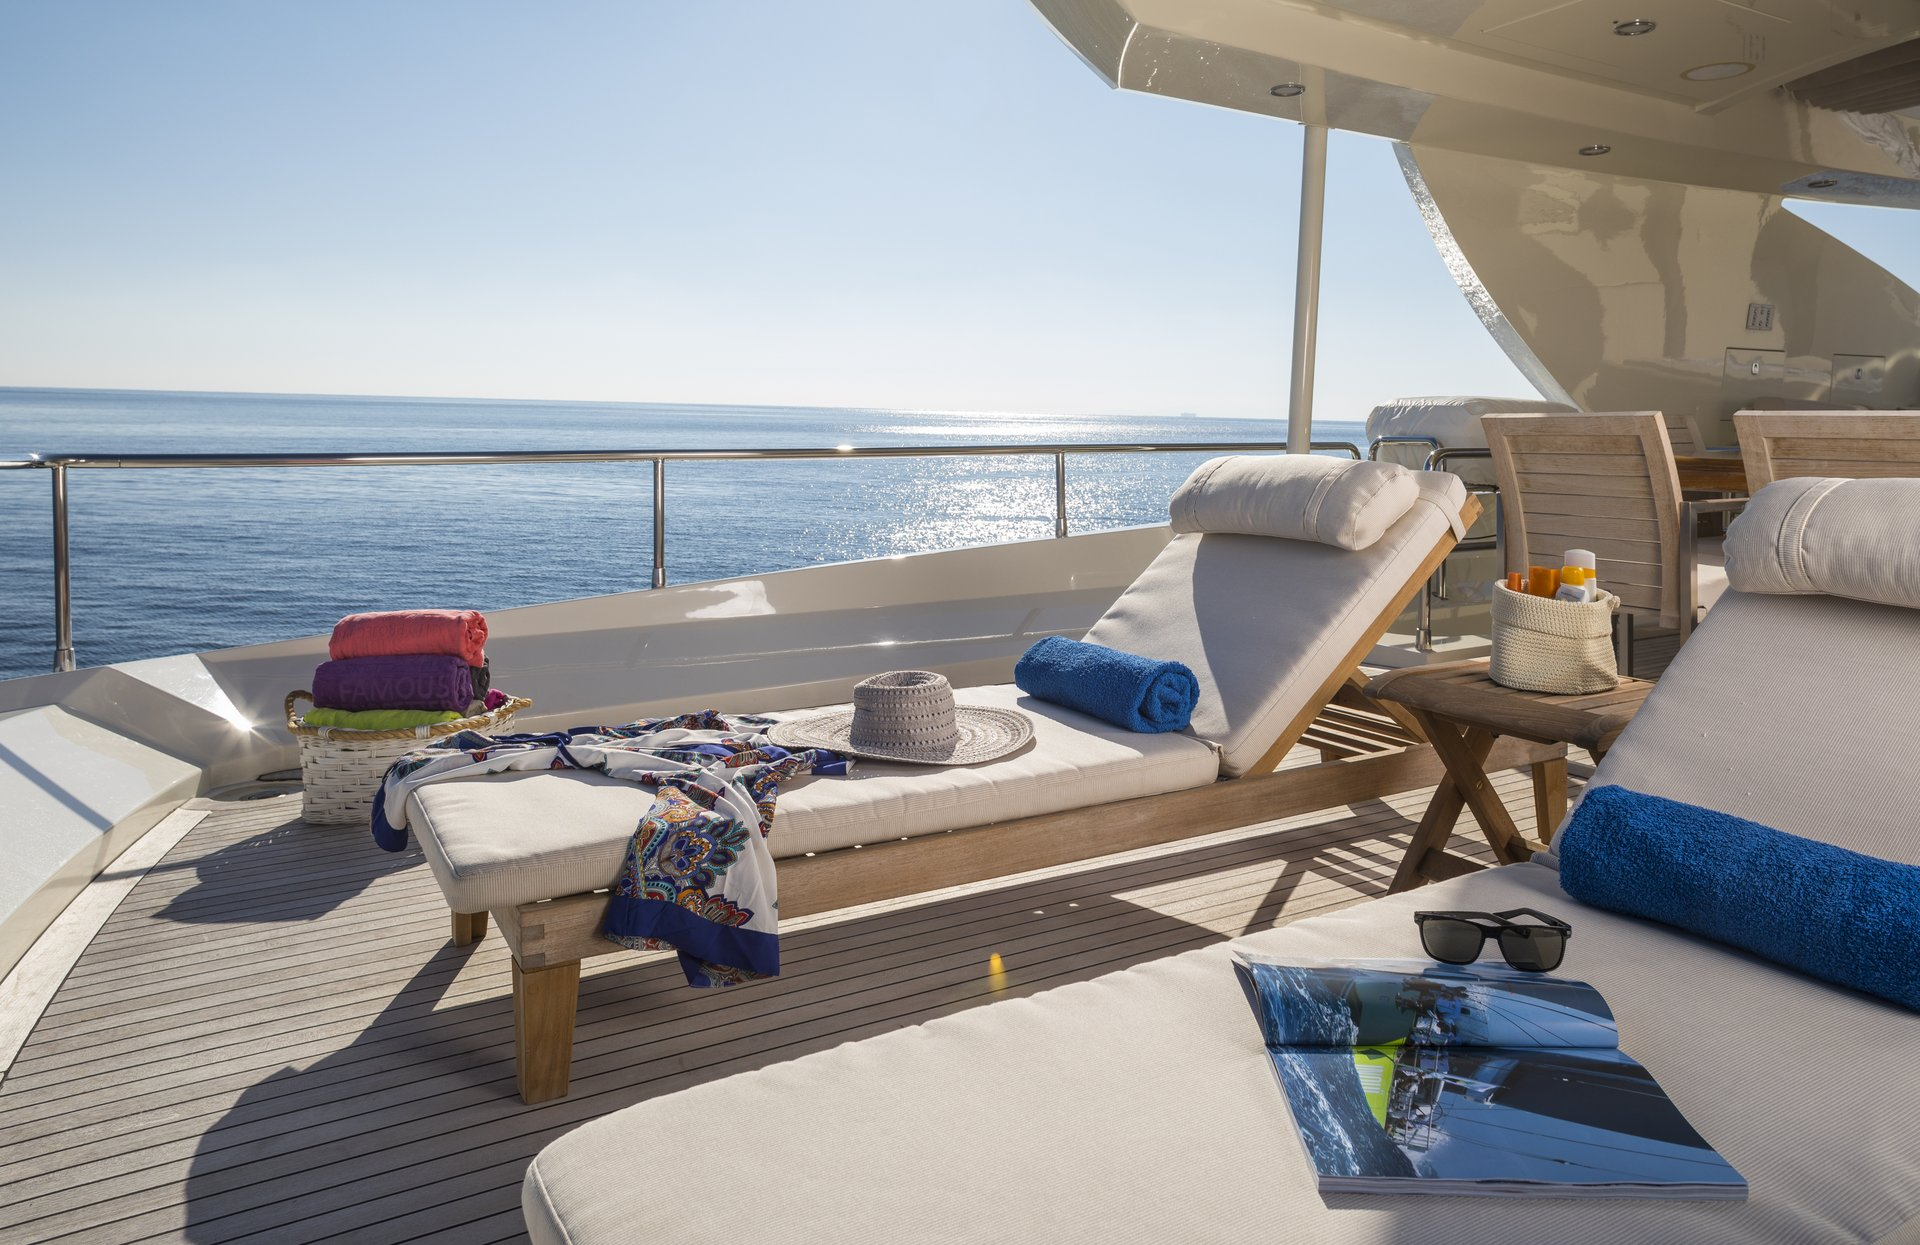 M/Y RINI V yacht for charter deck lounging